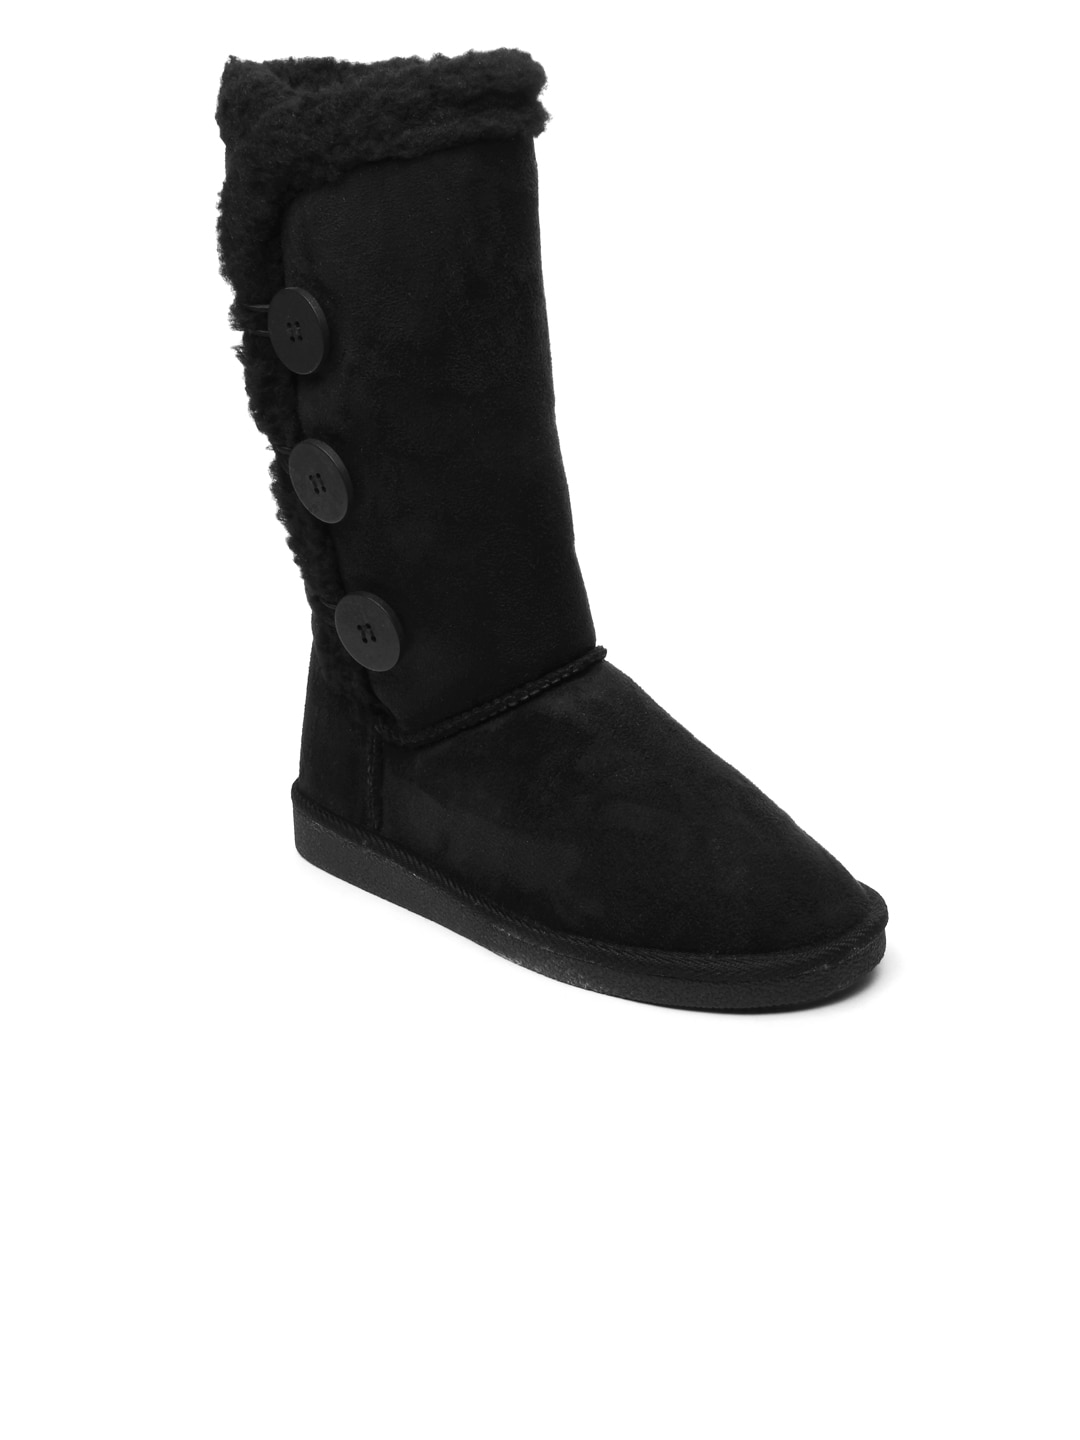 Carlton London Women Black Boots